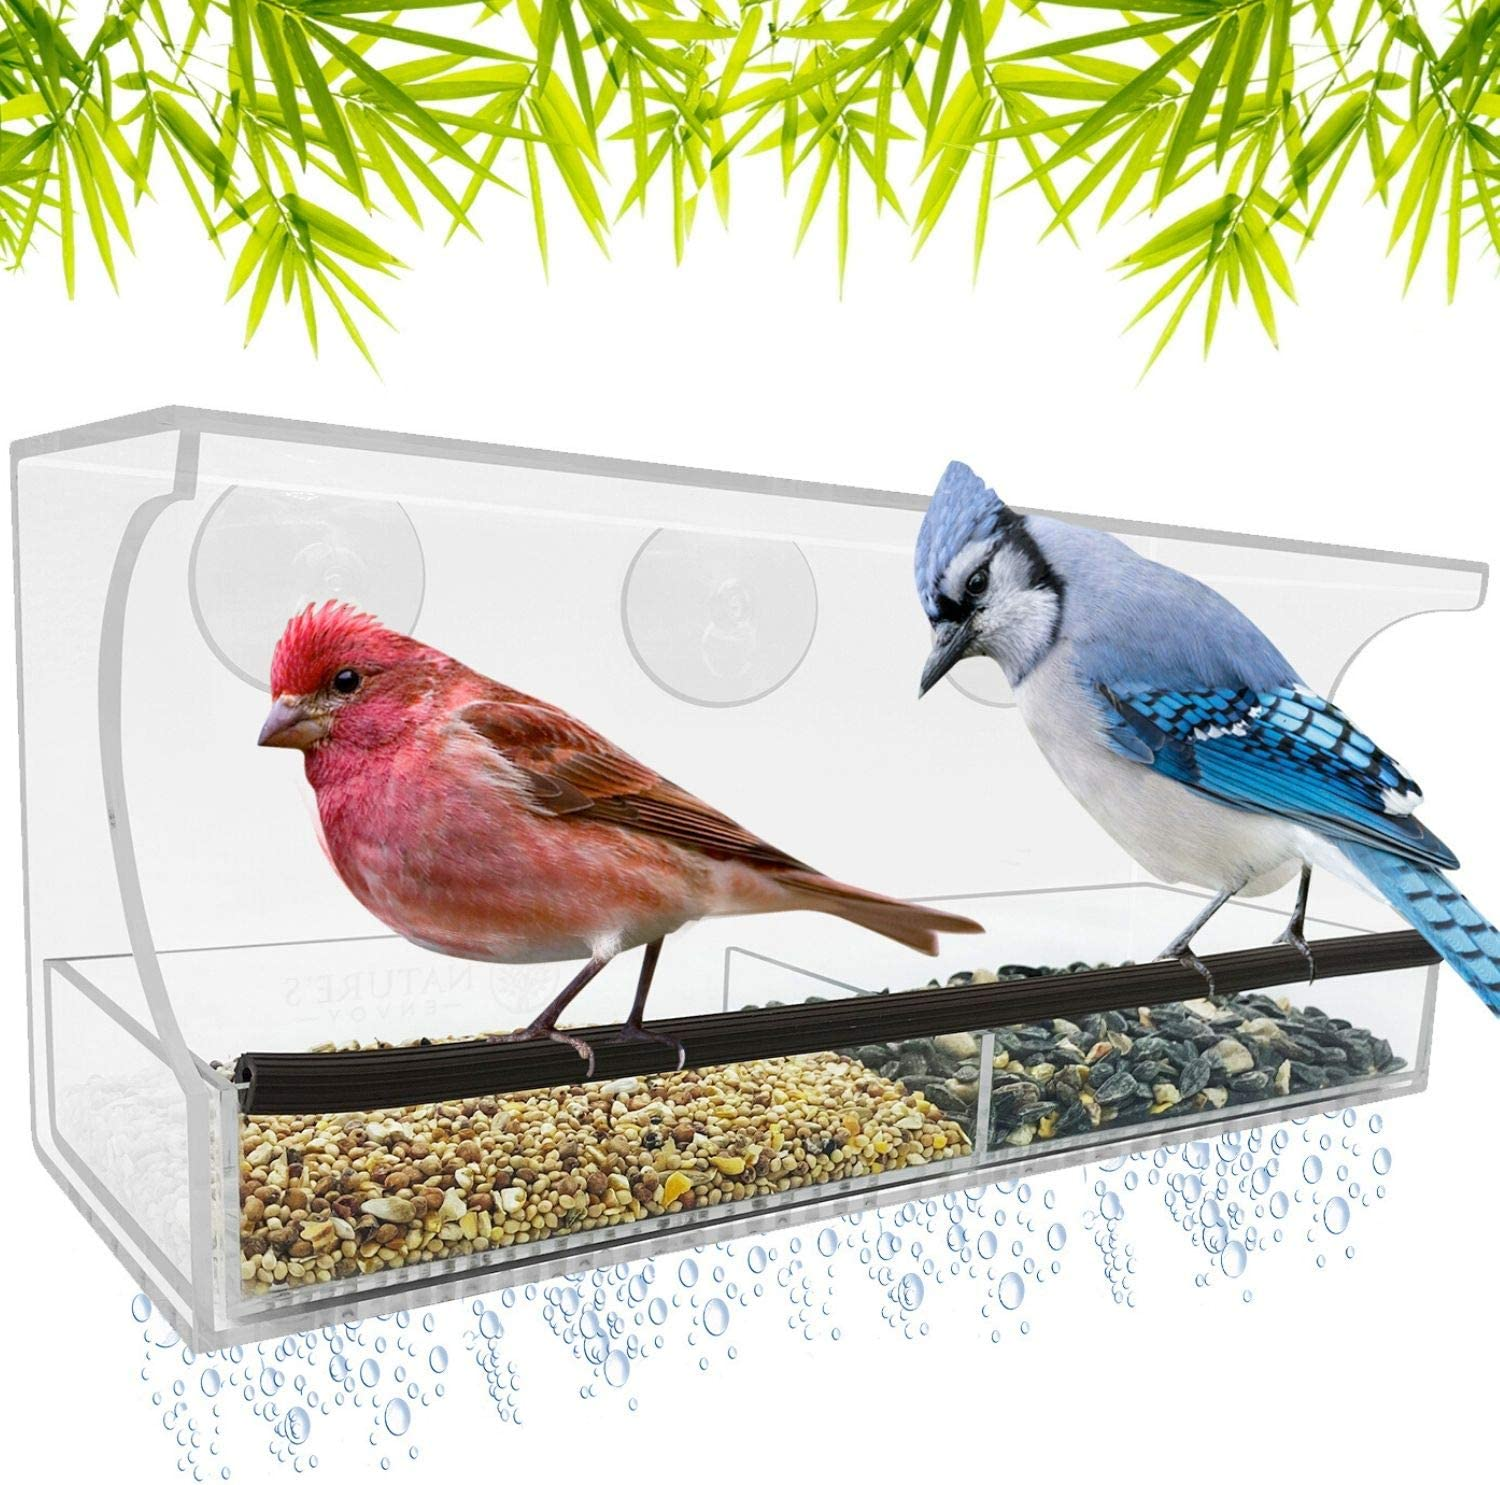 Window Bird Feeder - Strong Suction Cups for Outside - Nonslip Slide Out Seed Tray w/ Drainage Holes for Easy Clean - Clear Acrylic for Close Up View - Large Feeders for Finch, Cardinal, Wild Birds